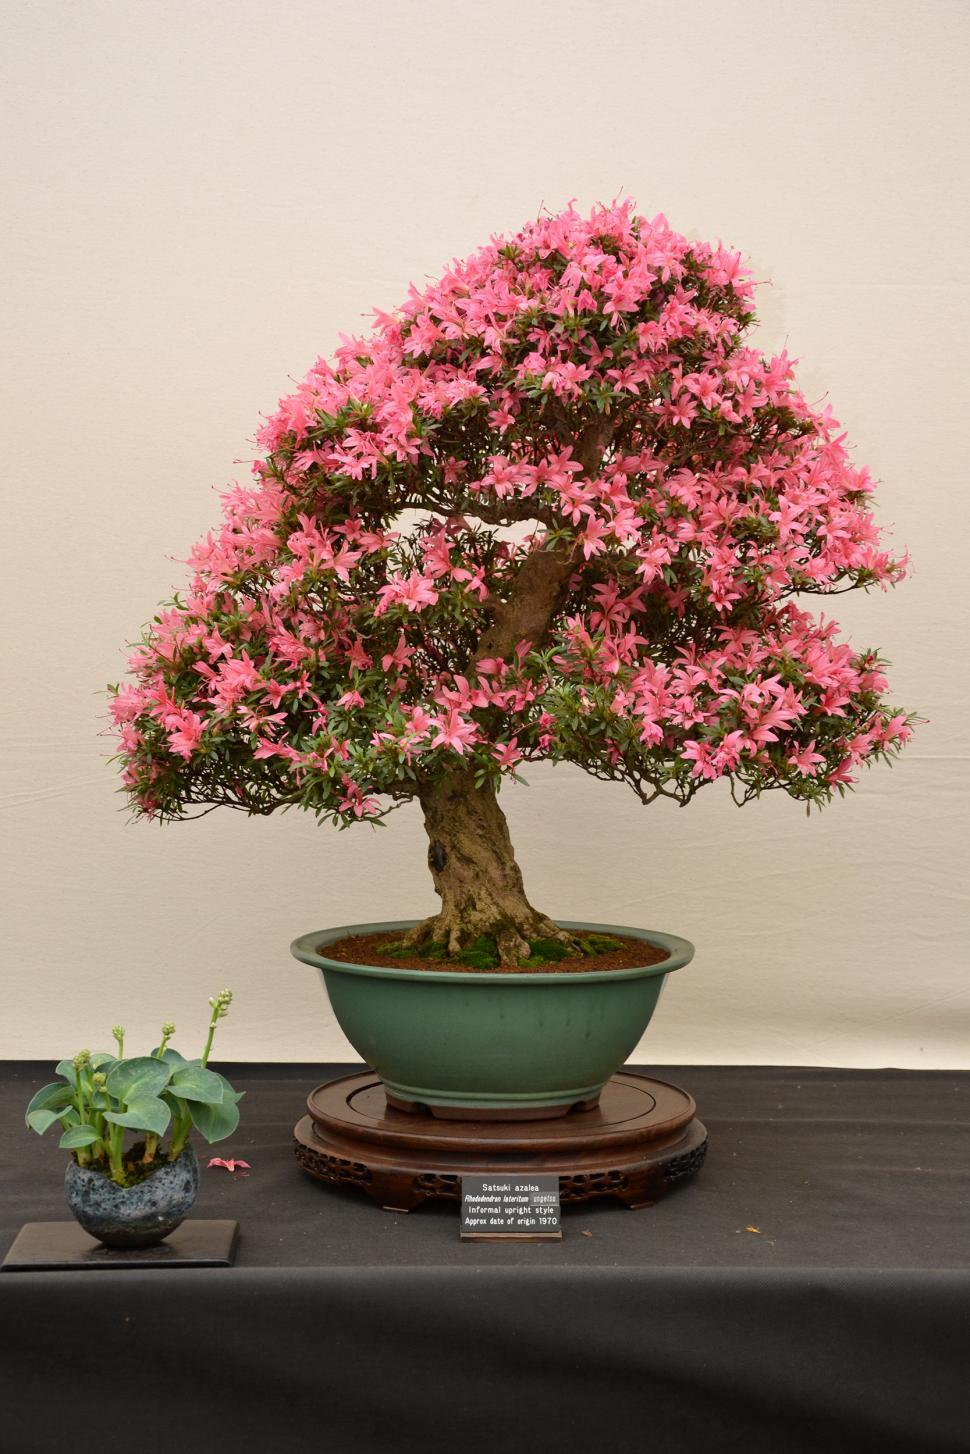 Download Free Stock HD Photo of Satsuki azalea bonsai Online